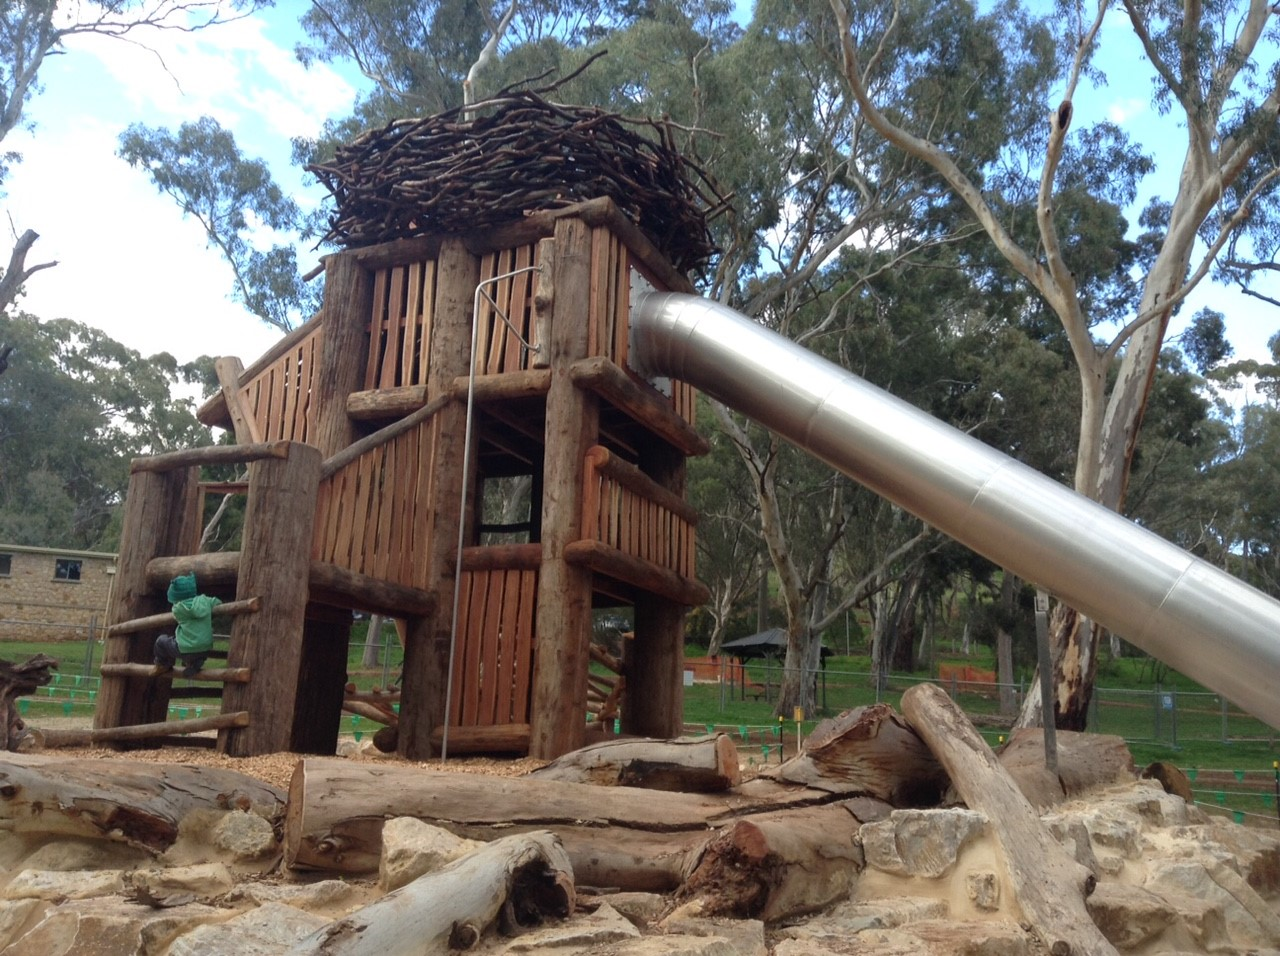 5 of the best playgrounds in Adelaide